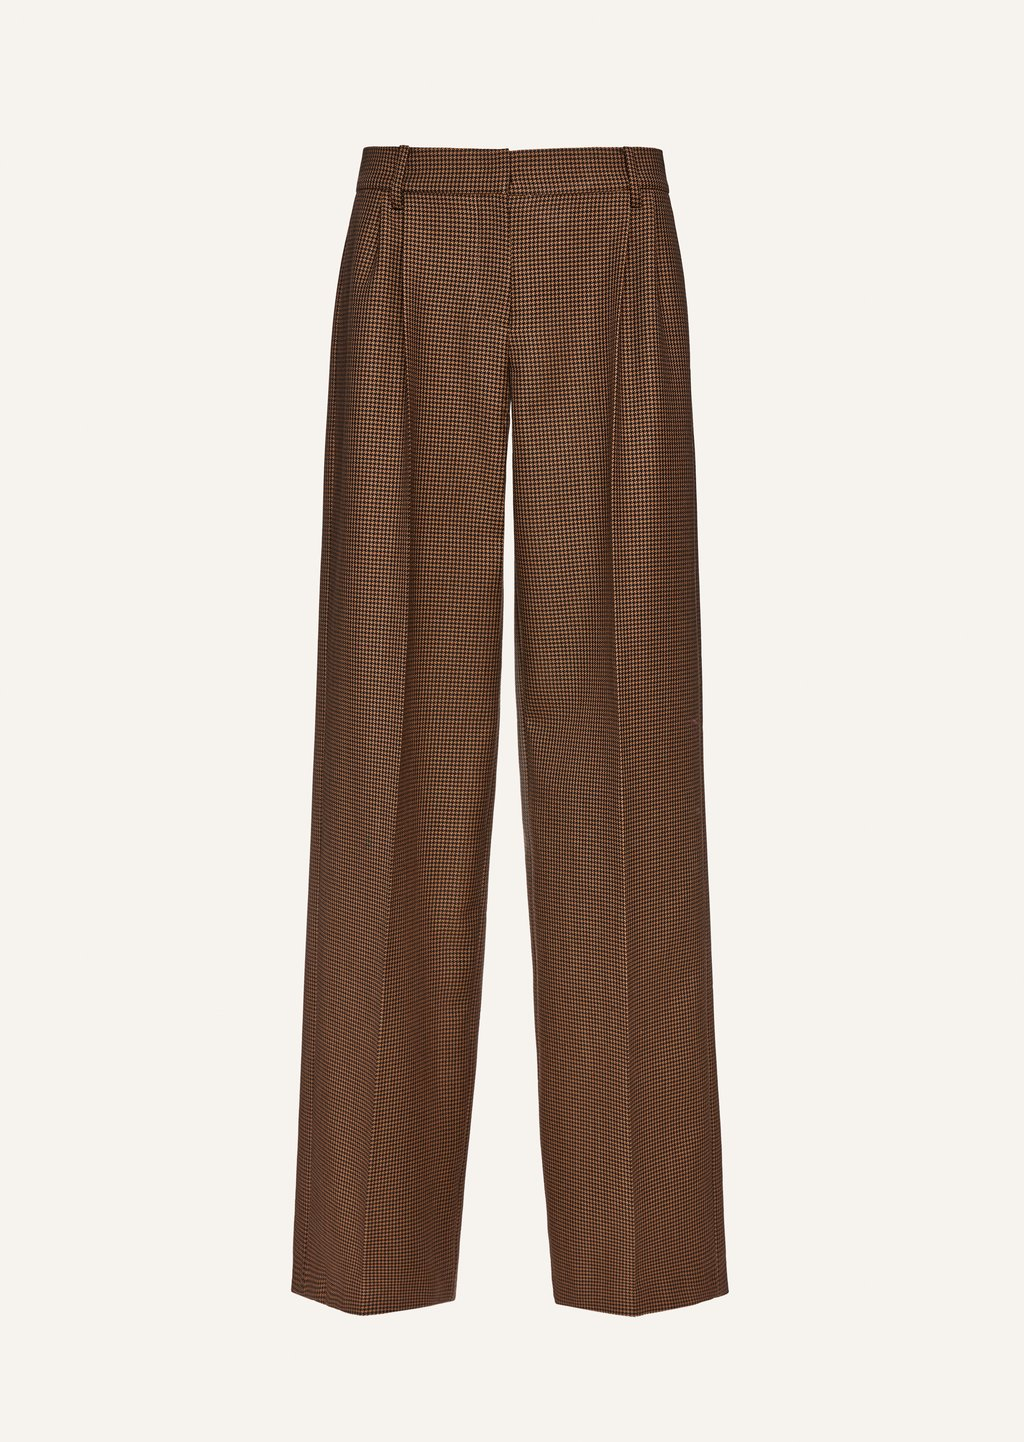 Flare leg wool pants in brown houndstooth by Magda Butrym, available on magdabutrym.com for $870 Hailey Baldwin Pants Exact Product